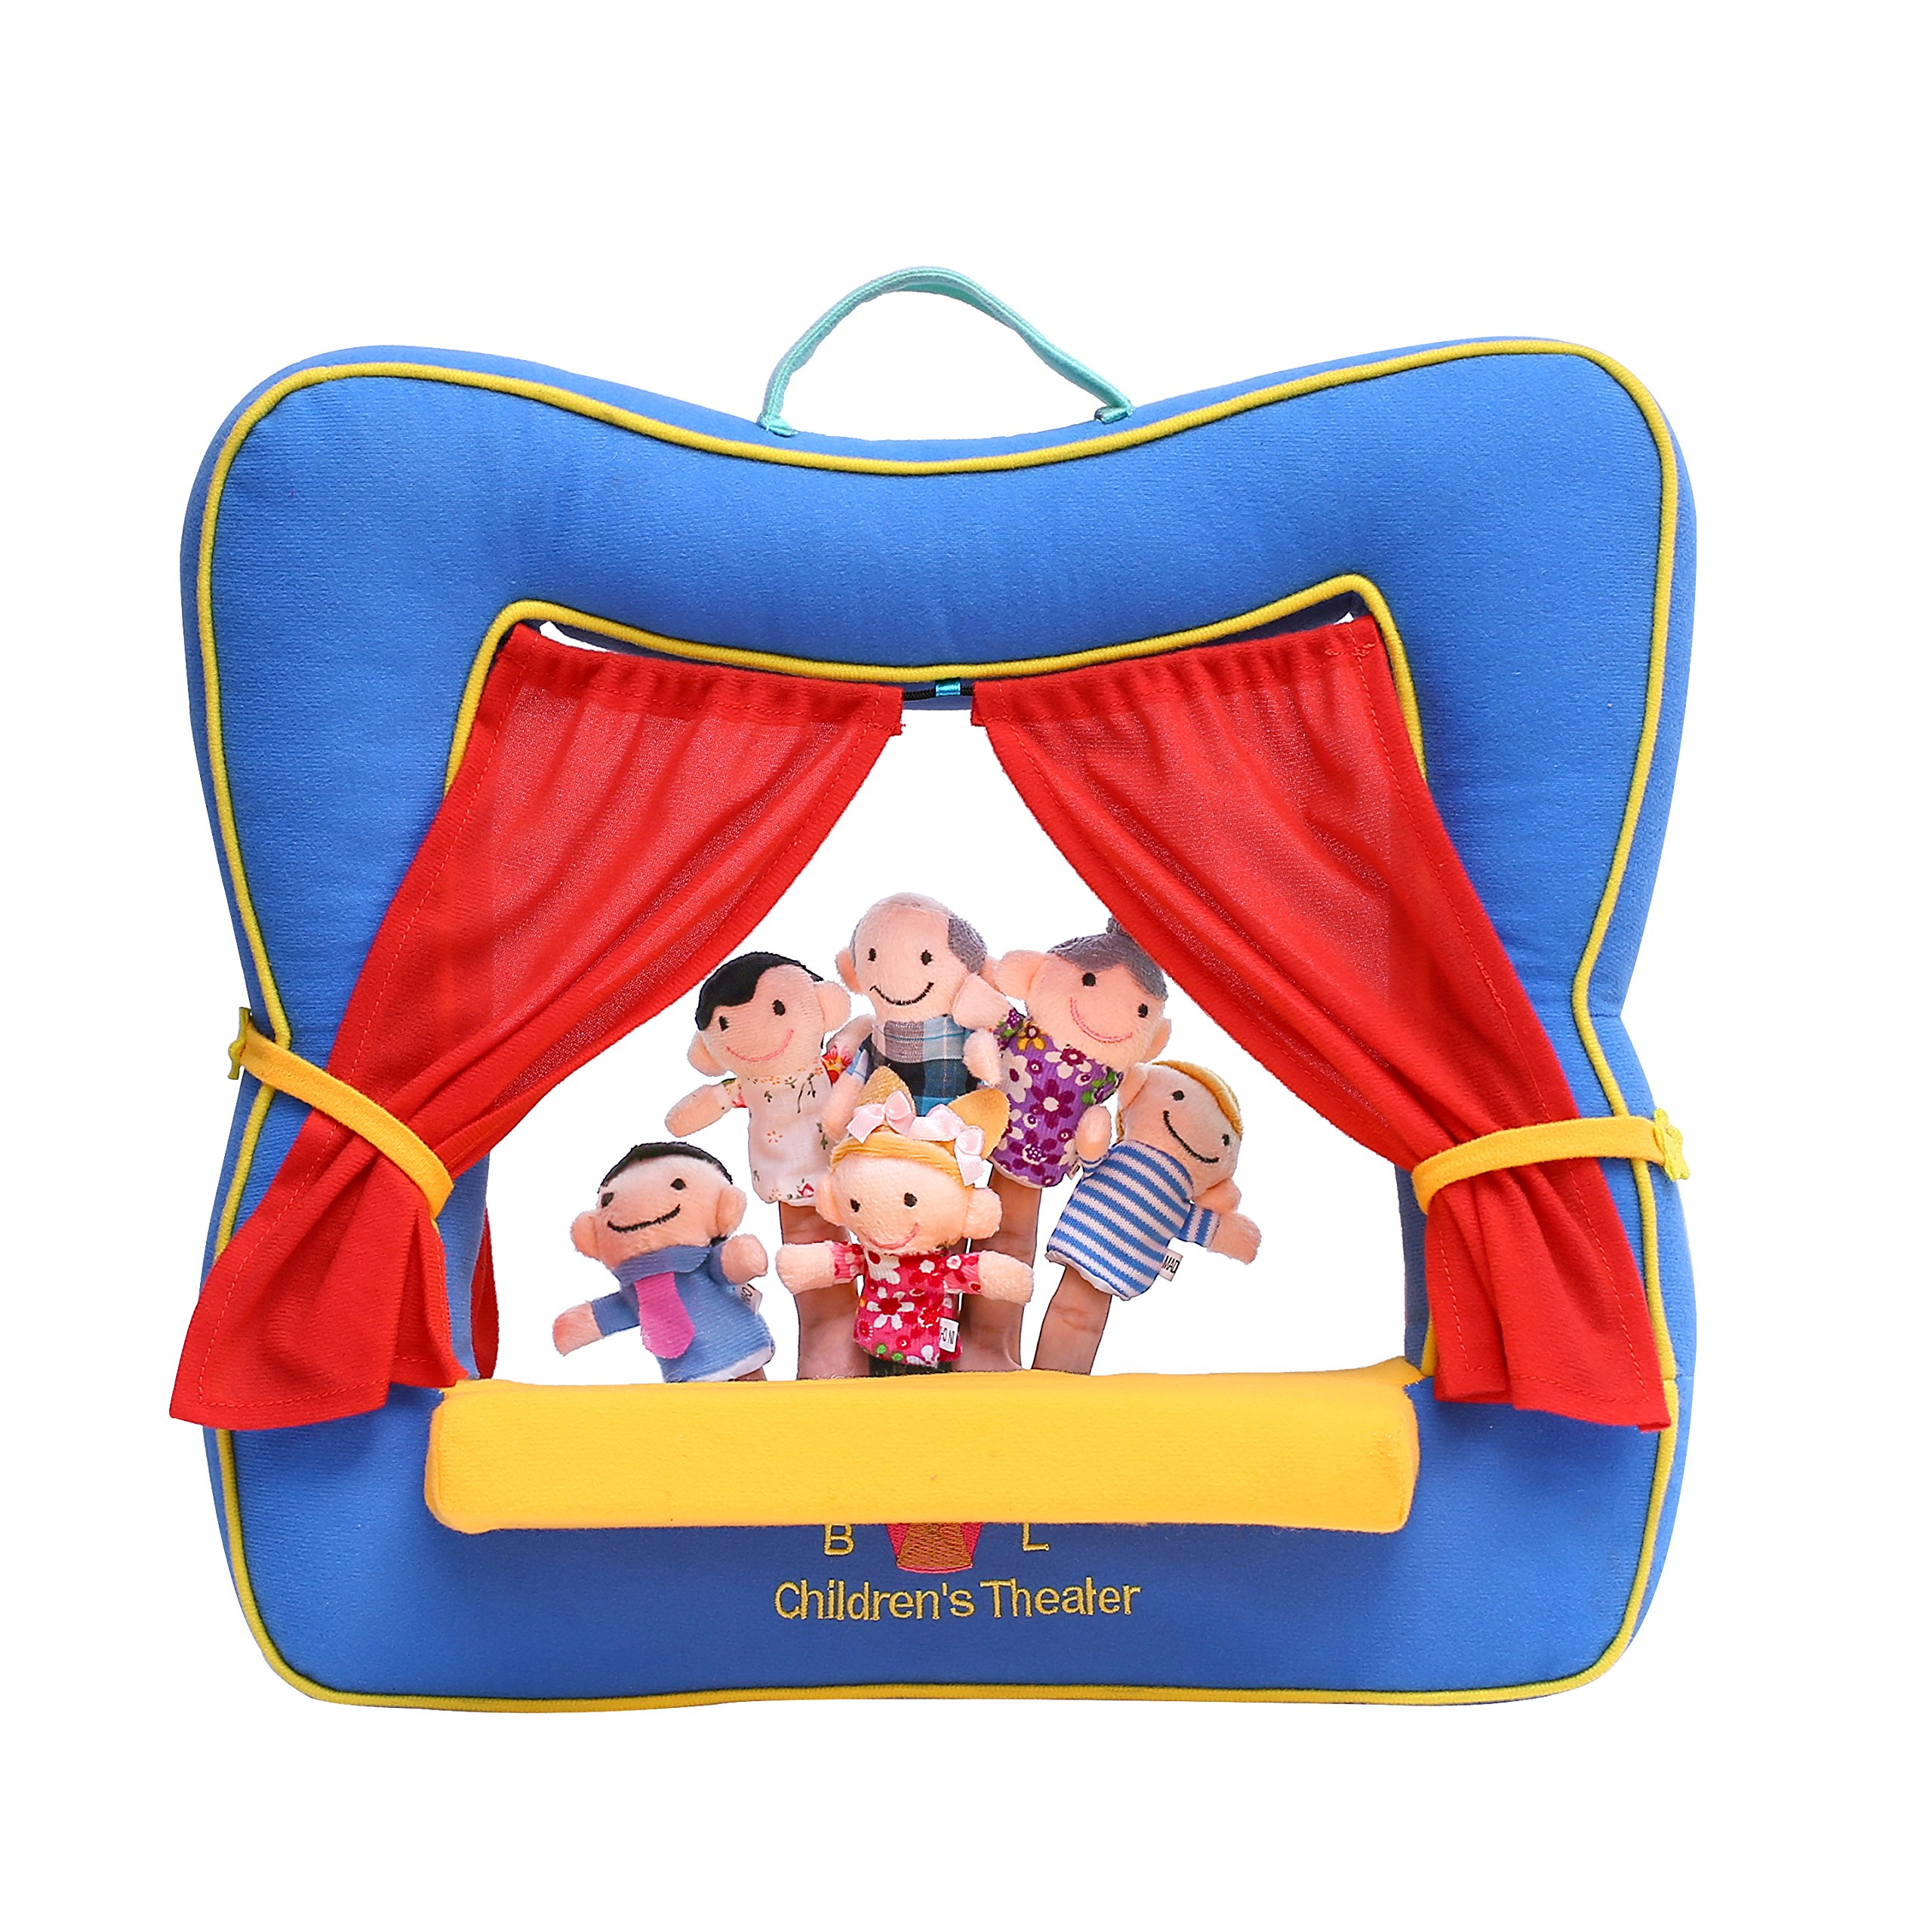 BETTERLINE Finger Puppet Theater Stage by Better Line - Set Includes 6 Finger Family Puppets - Portable Plush Finger Puppet Theater is The Best Preschool Kids (Blue)